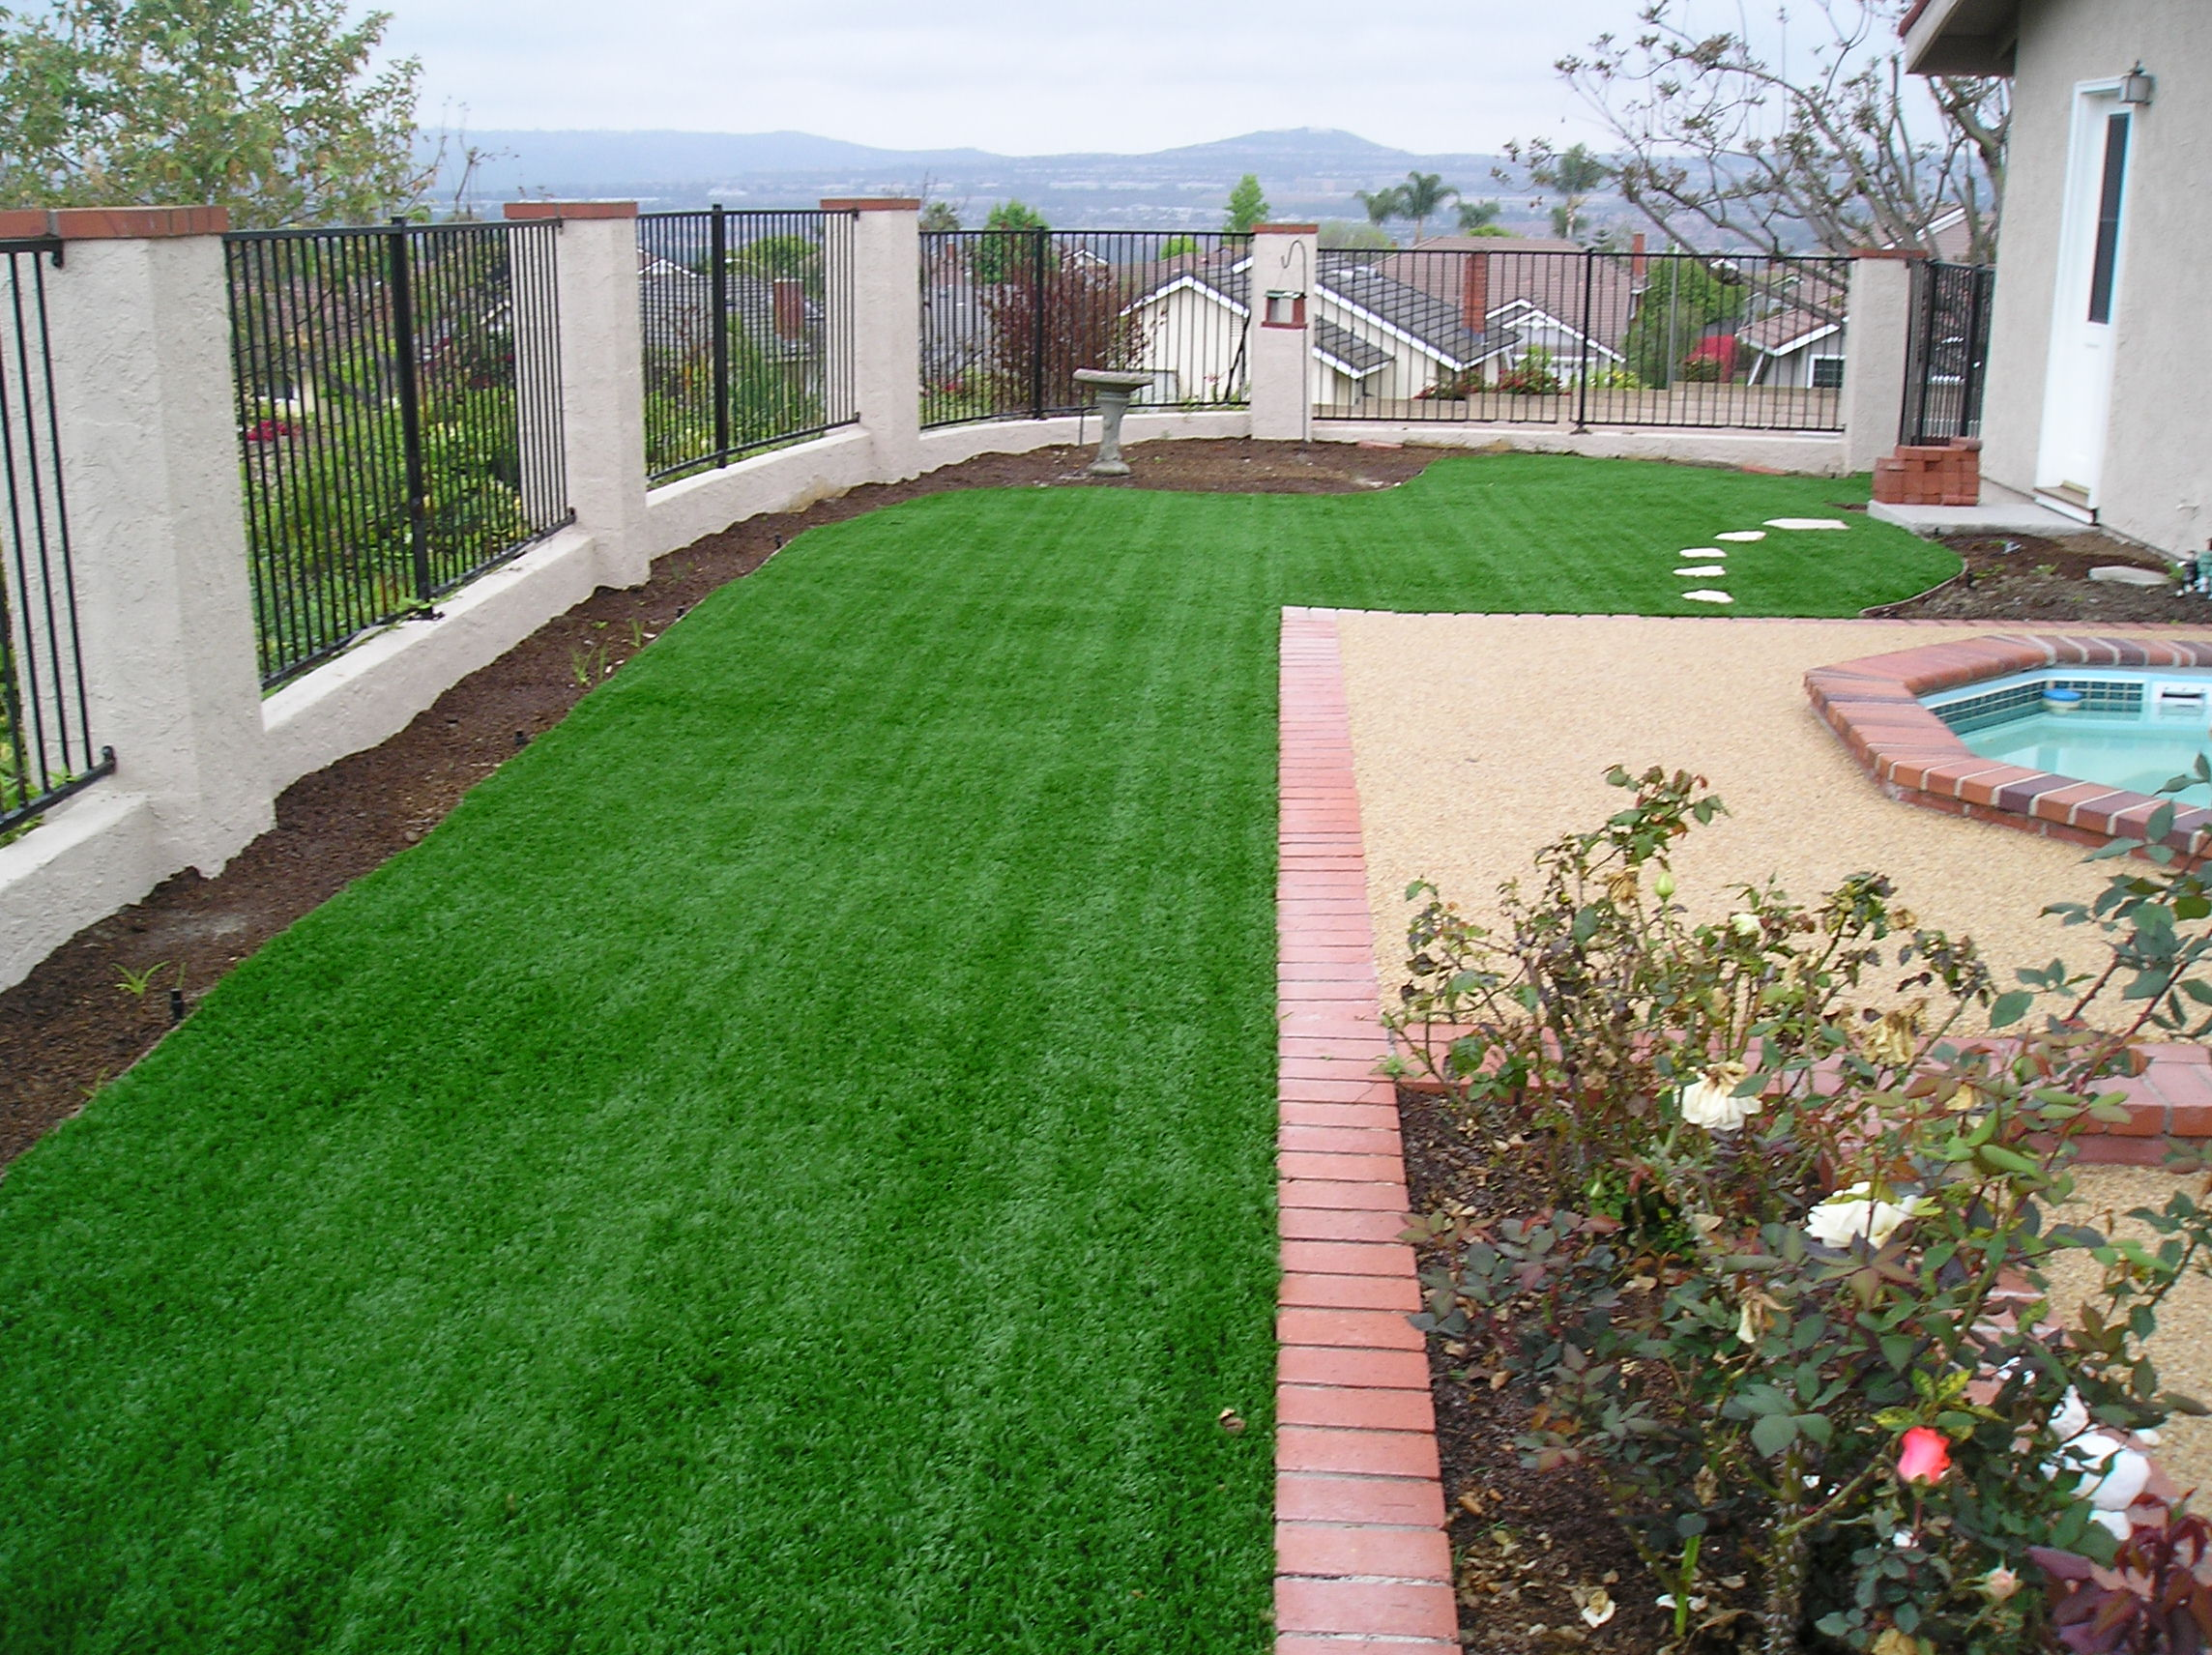 Emerald-92 Stemgrass artificial turf,synthetic turf,artificial turf installation,how to install artificial turf,used artificial turf